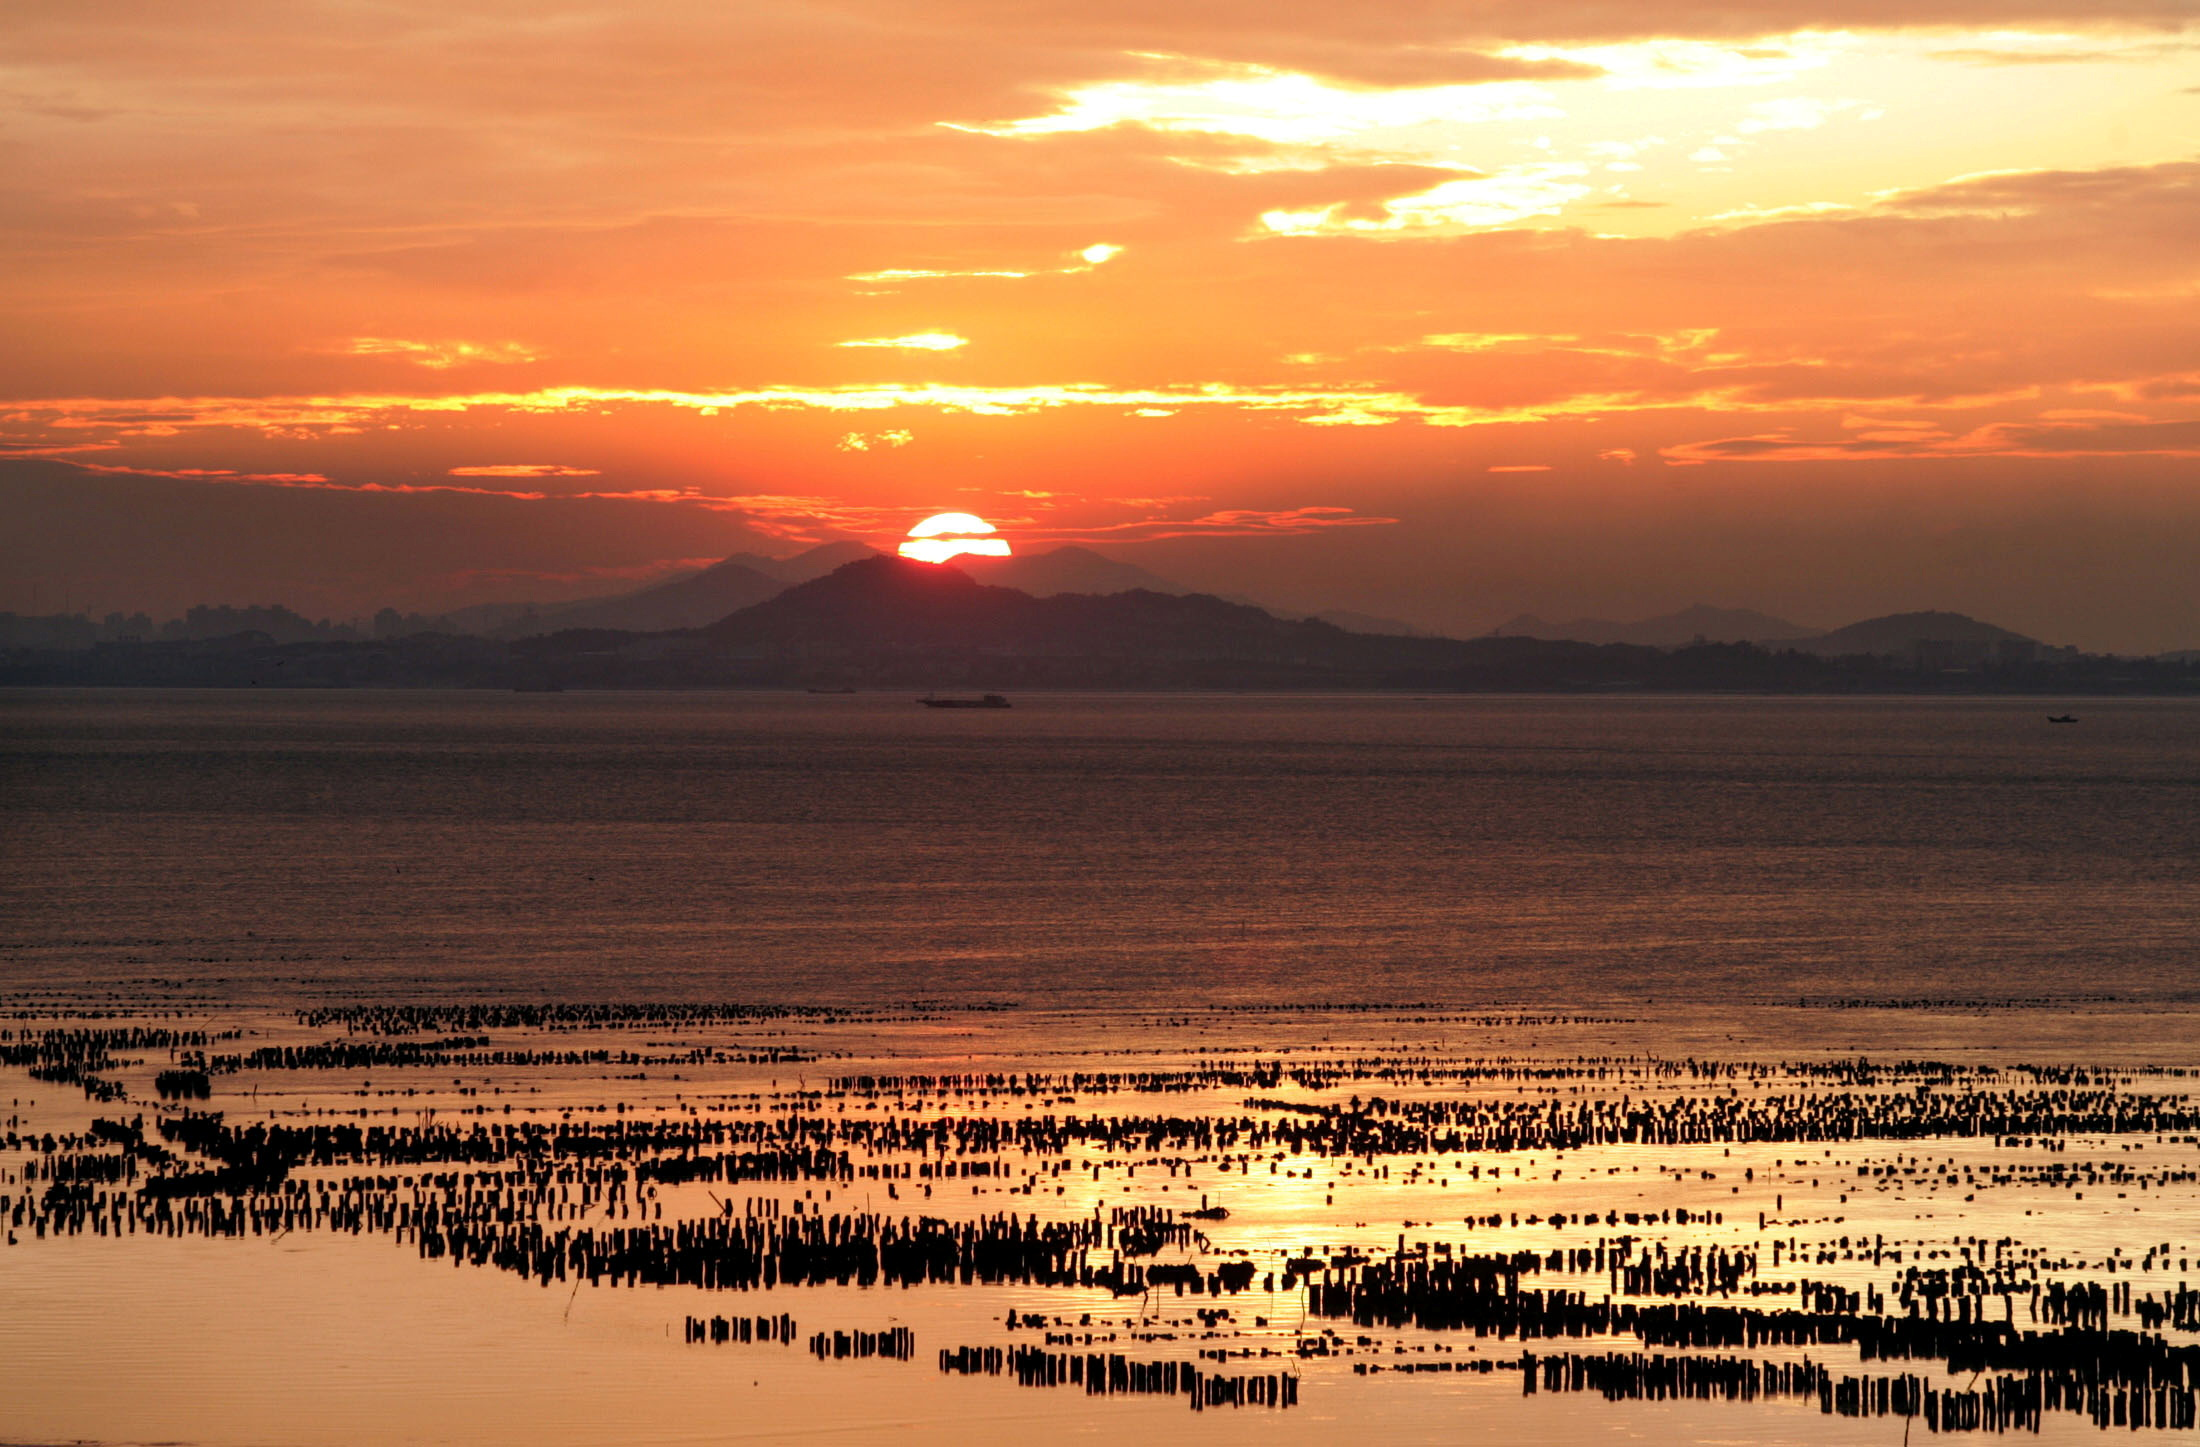 The sun sets over China's southeastern coast of Fujian as seen from Taiwan's frontline island of Kinmen on September 11, 2004. REUTERS/Richard Chung